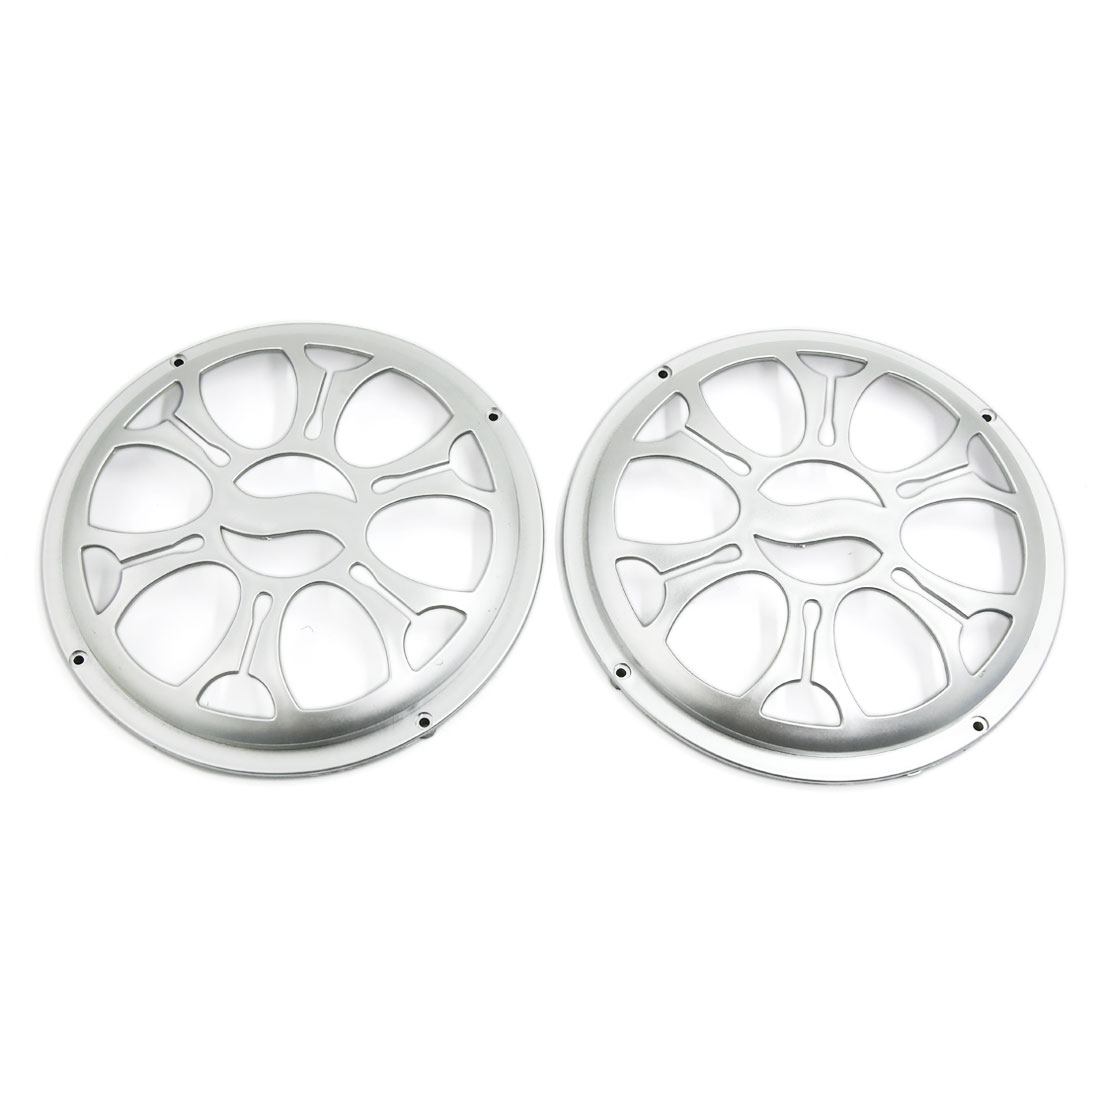 "Unique Bargains Plastic 8"" Car Speaker Subwoofer Grill Protective Dust Cover Sliver Tone Pair"